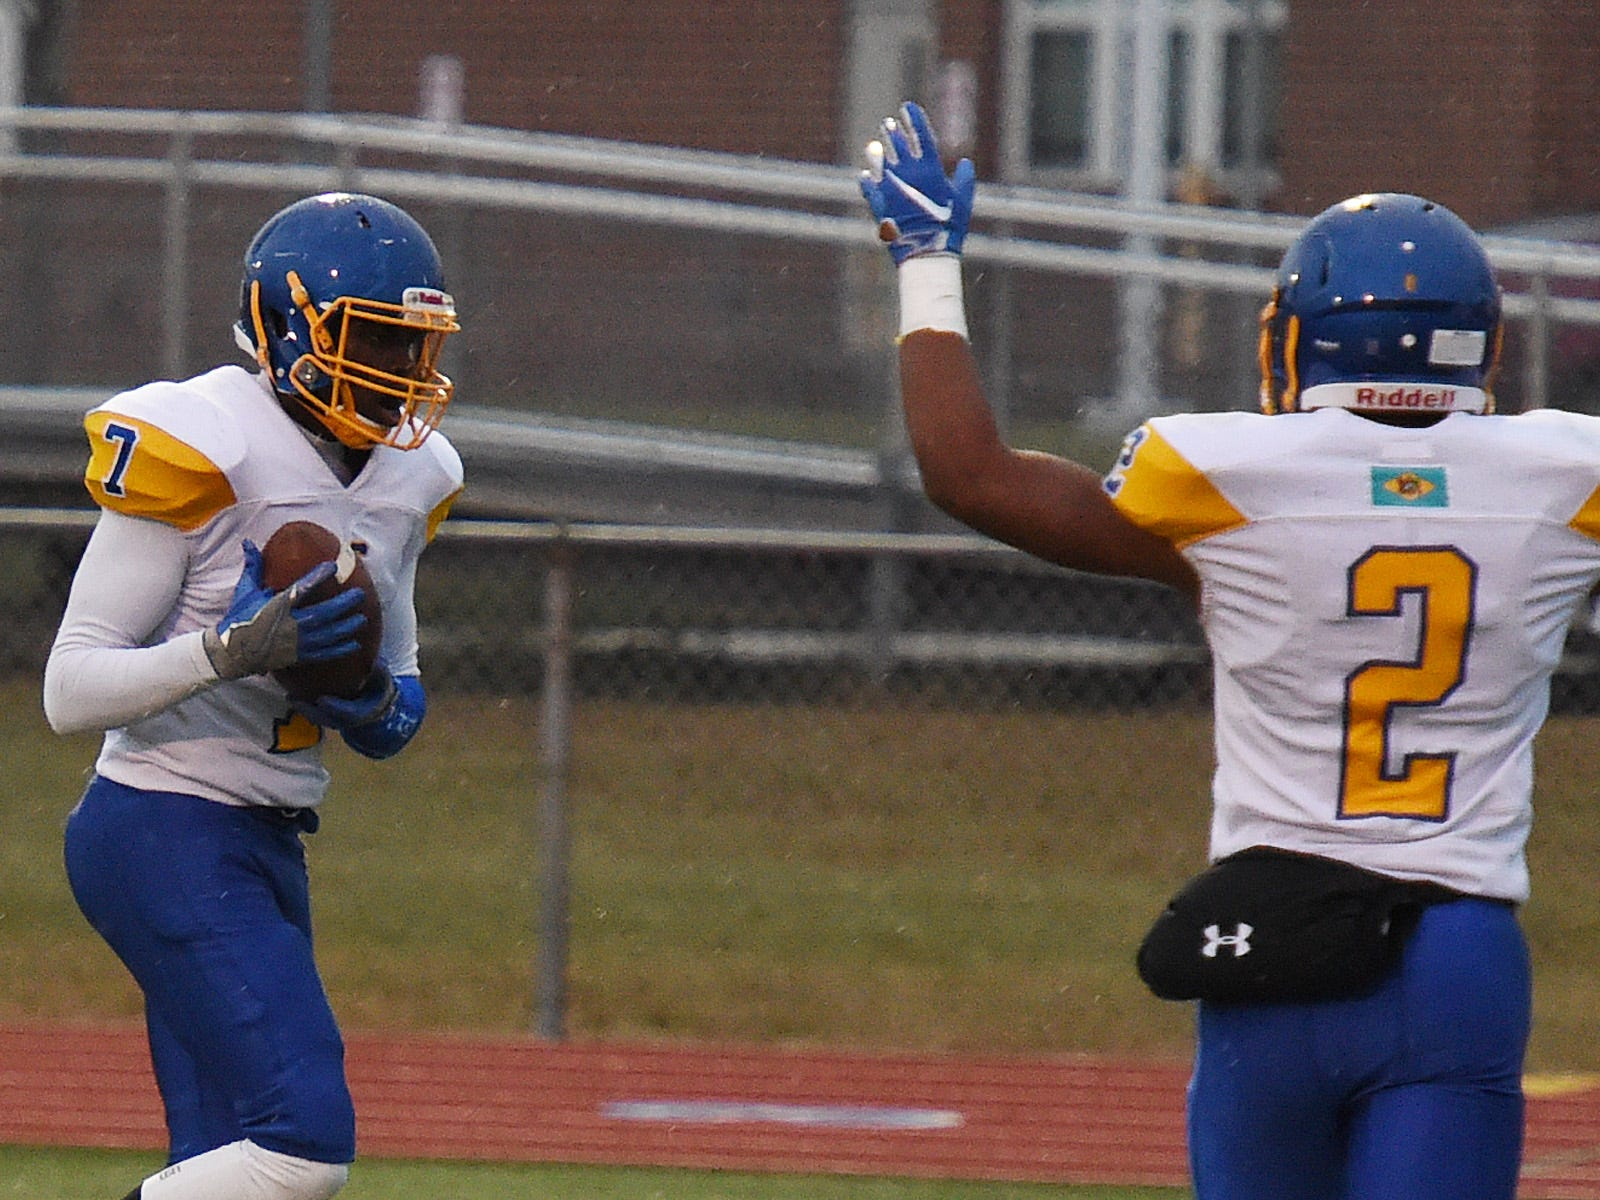 Sussex Central's Dom Smith, No. 7, makes a touchdown during the 43-0 win over Cape Henlopen in Lewes on  Oct. 26, 2018.